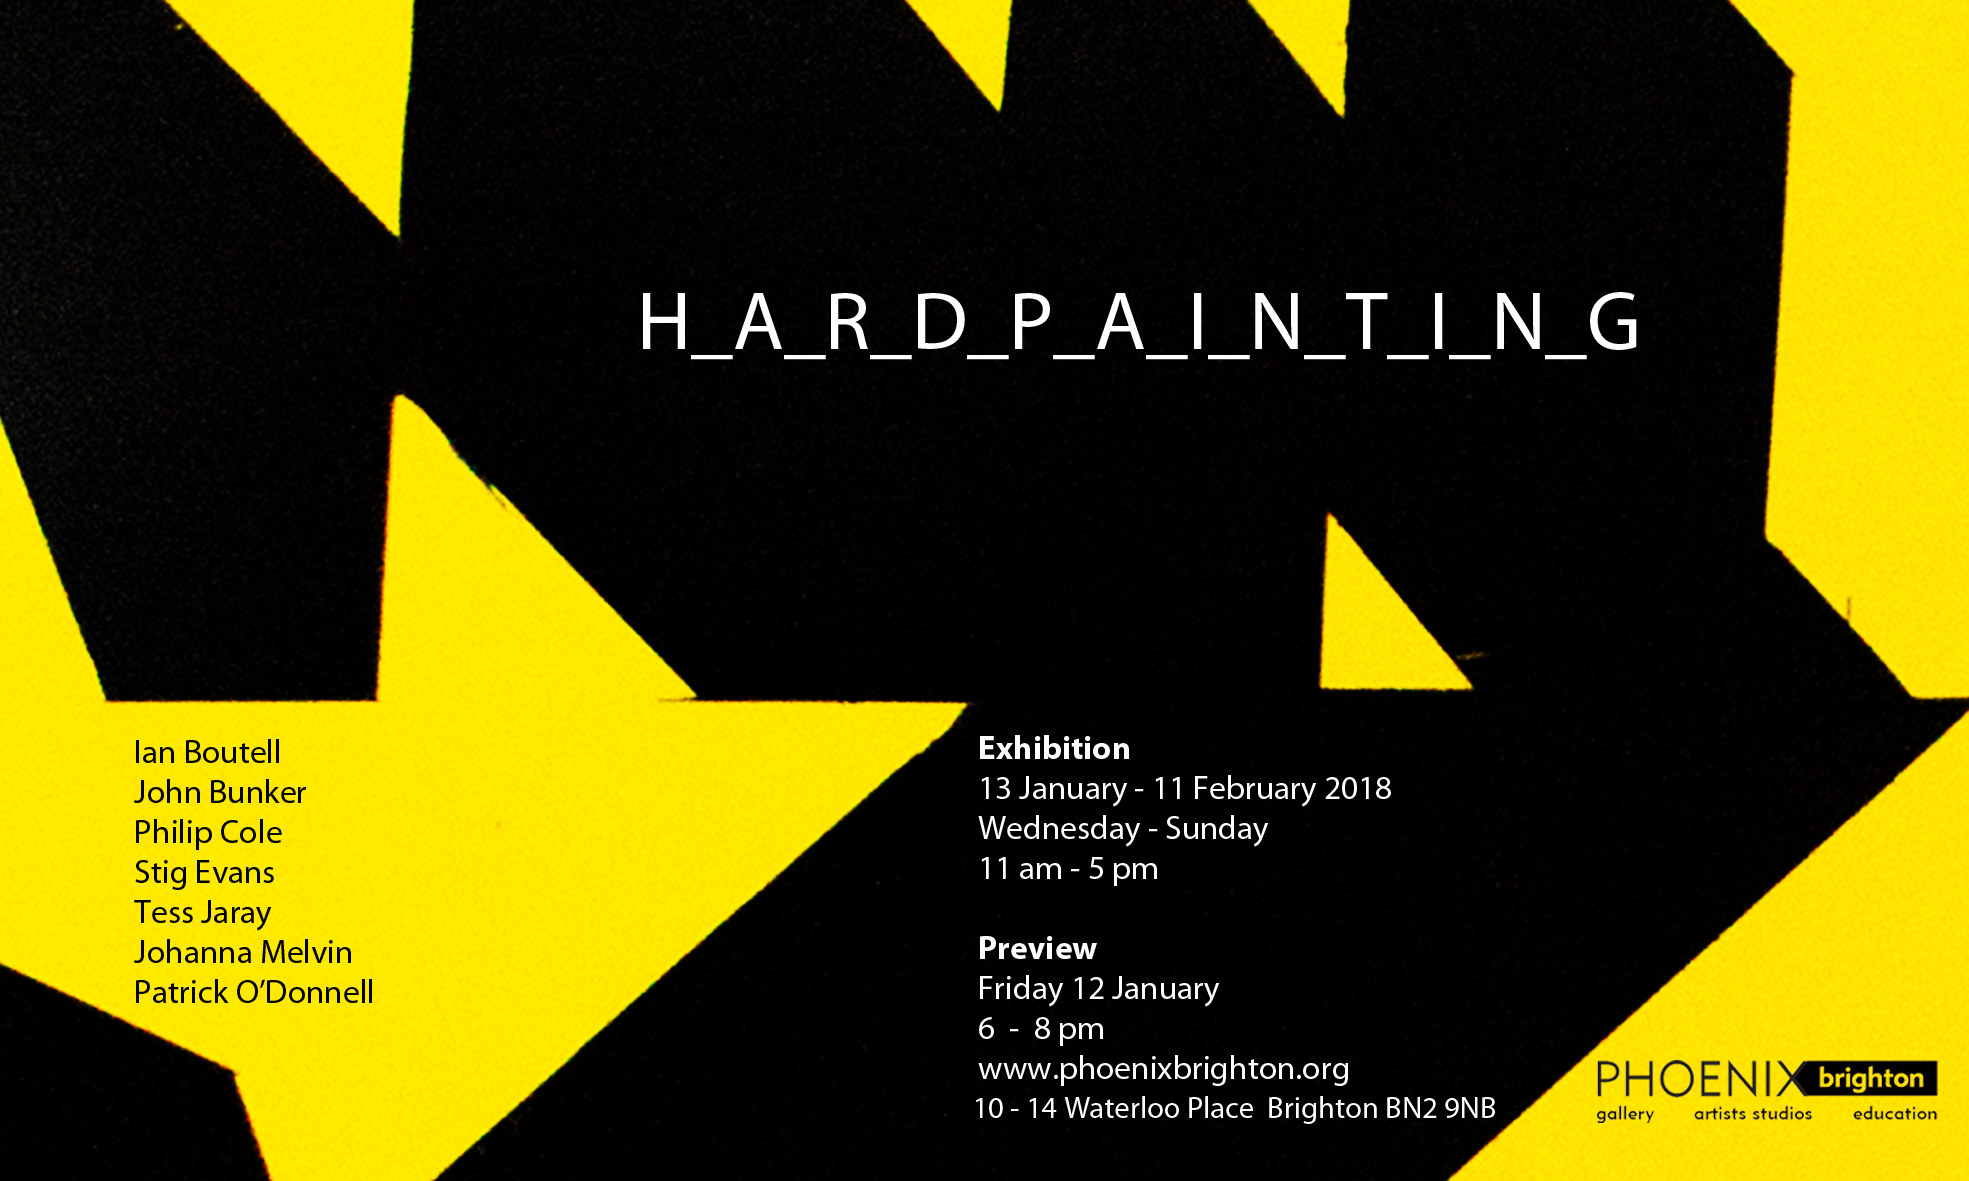 Exhibition flyer by Patrick O'Donnell (image detail from Neverending by Ian Boutell)